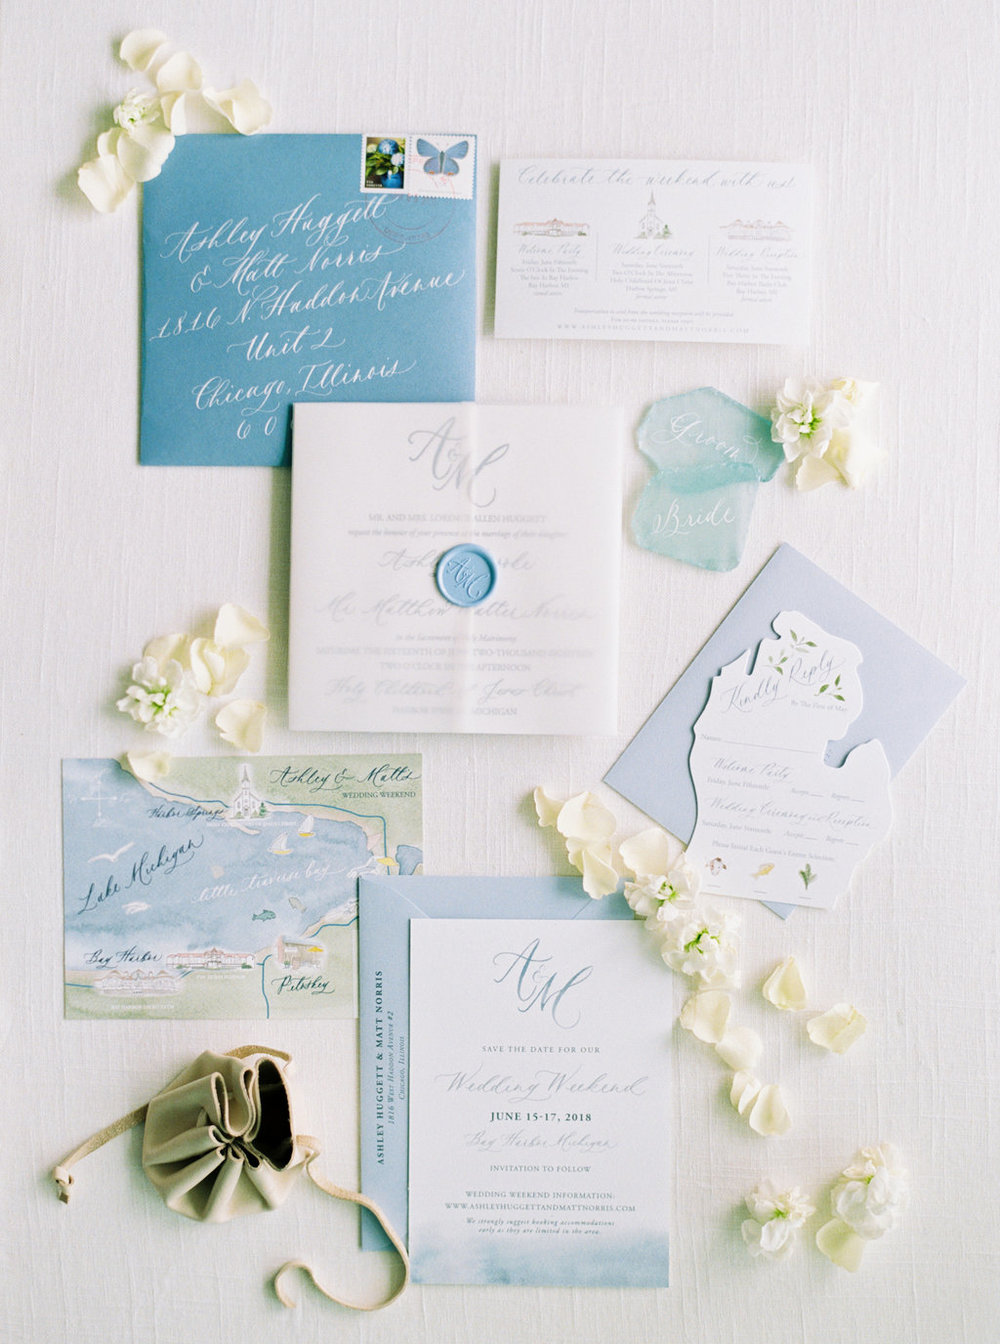 Invitations set the tone. Beautiful Invitations set expectations.  -